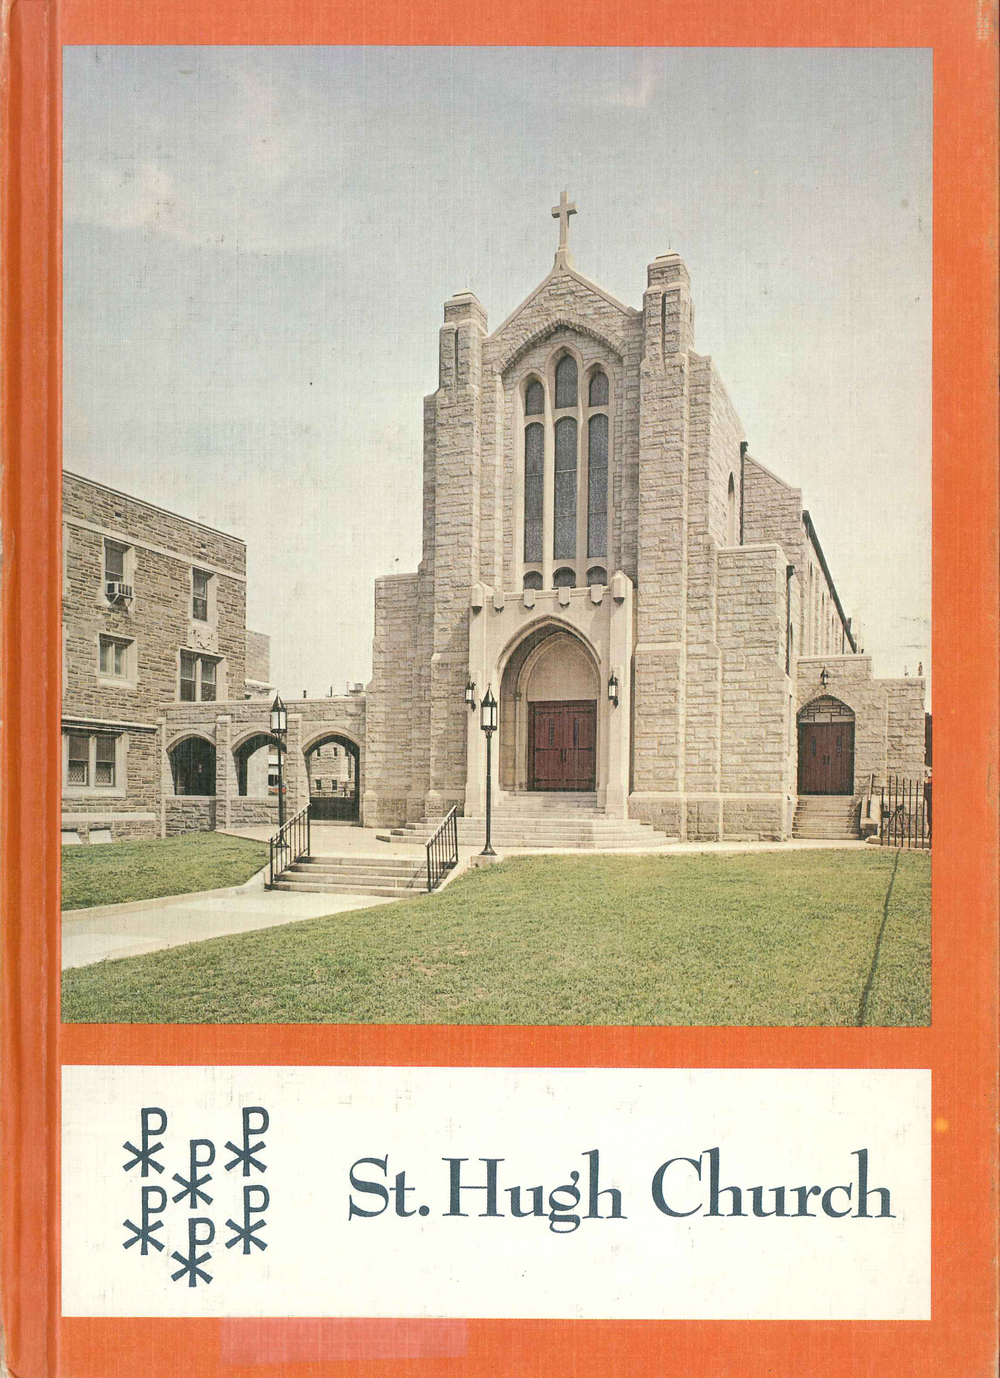 ST. HUGH OF CLUNY 1973 ANNIVERSARY BOOKLET